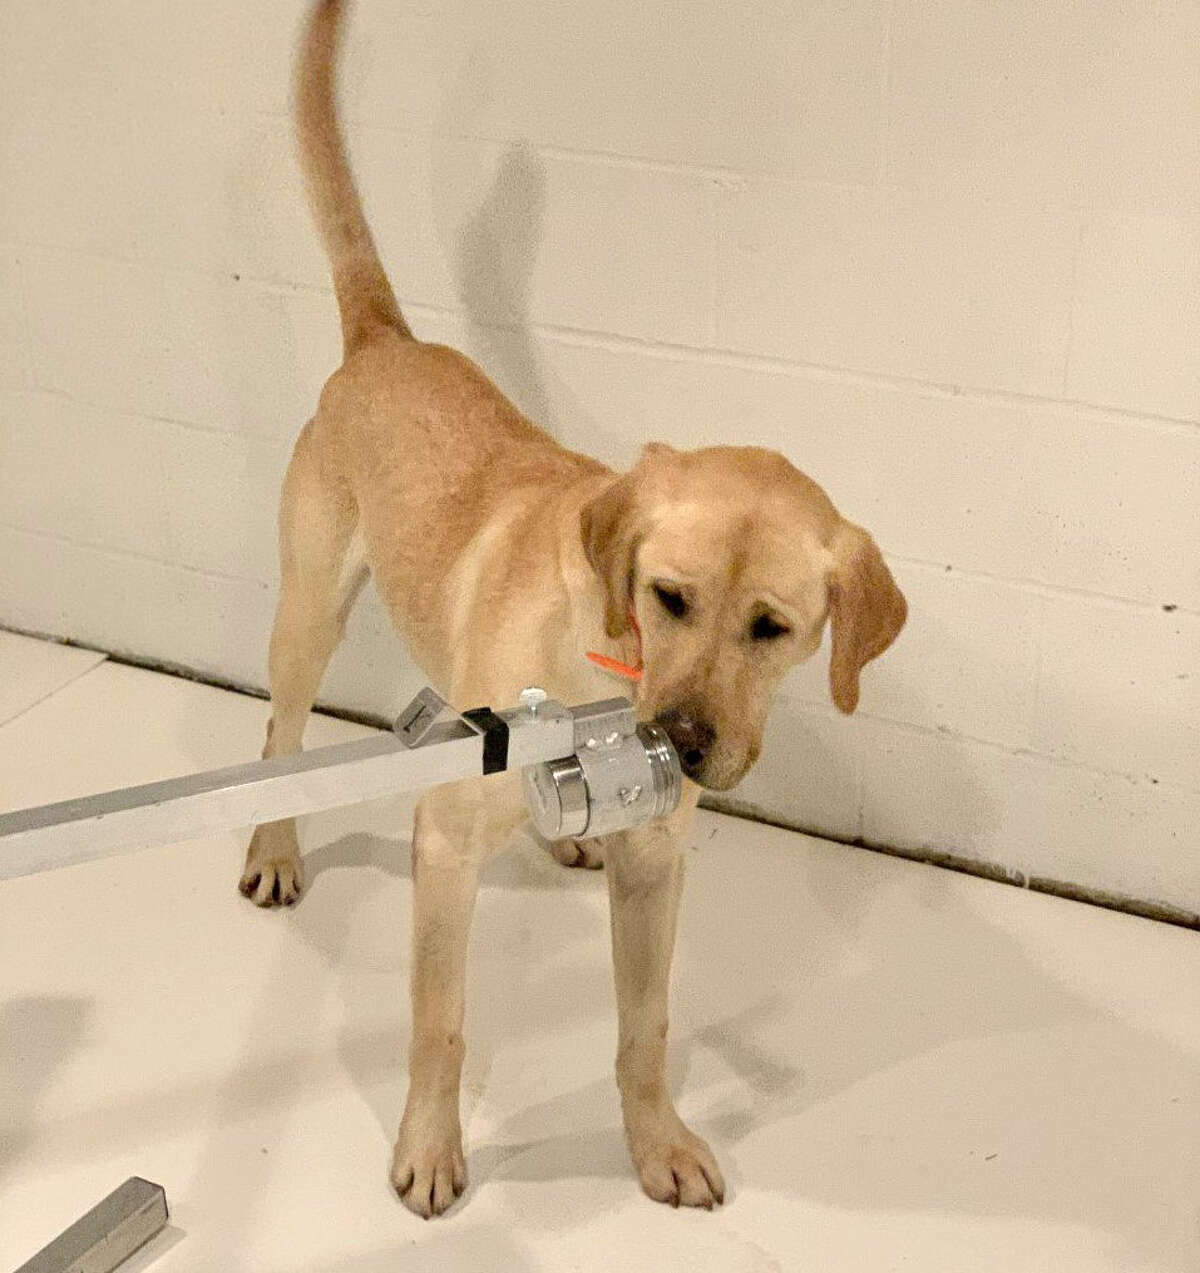 Poncho, a yellow Labrador retriever, is training to detect the scent of the coronavirus as part of a University of Pennsylvania study. (